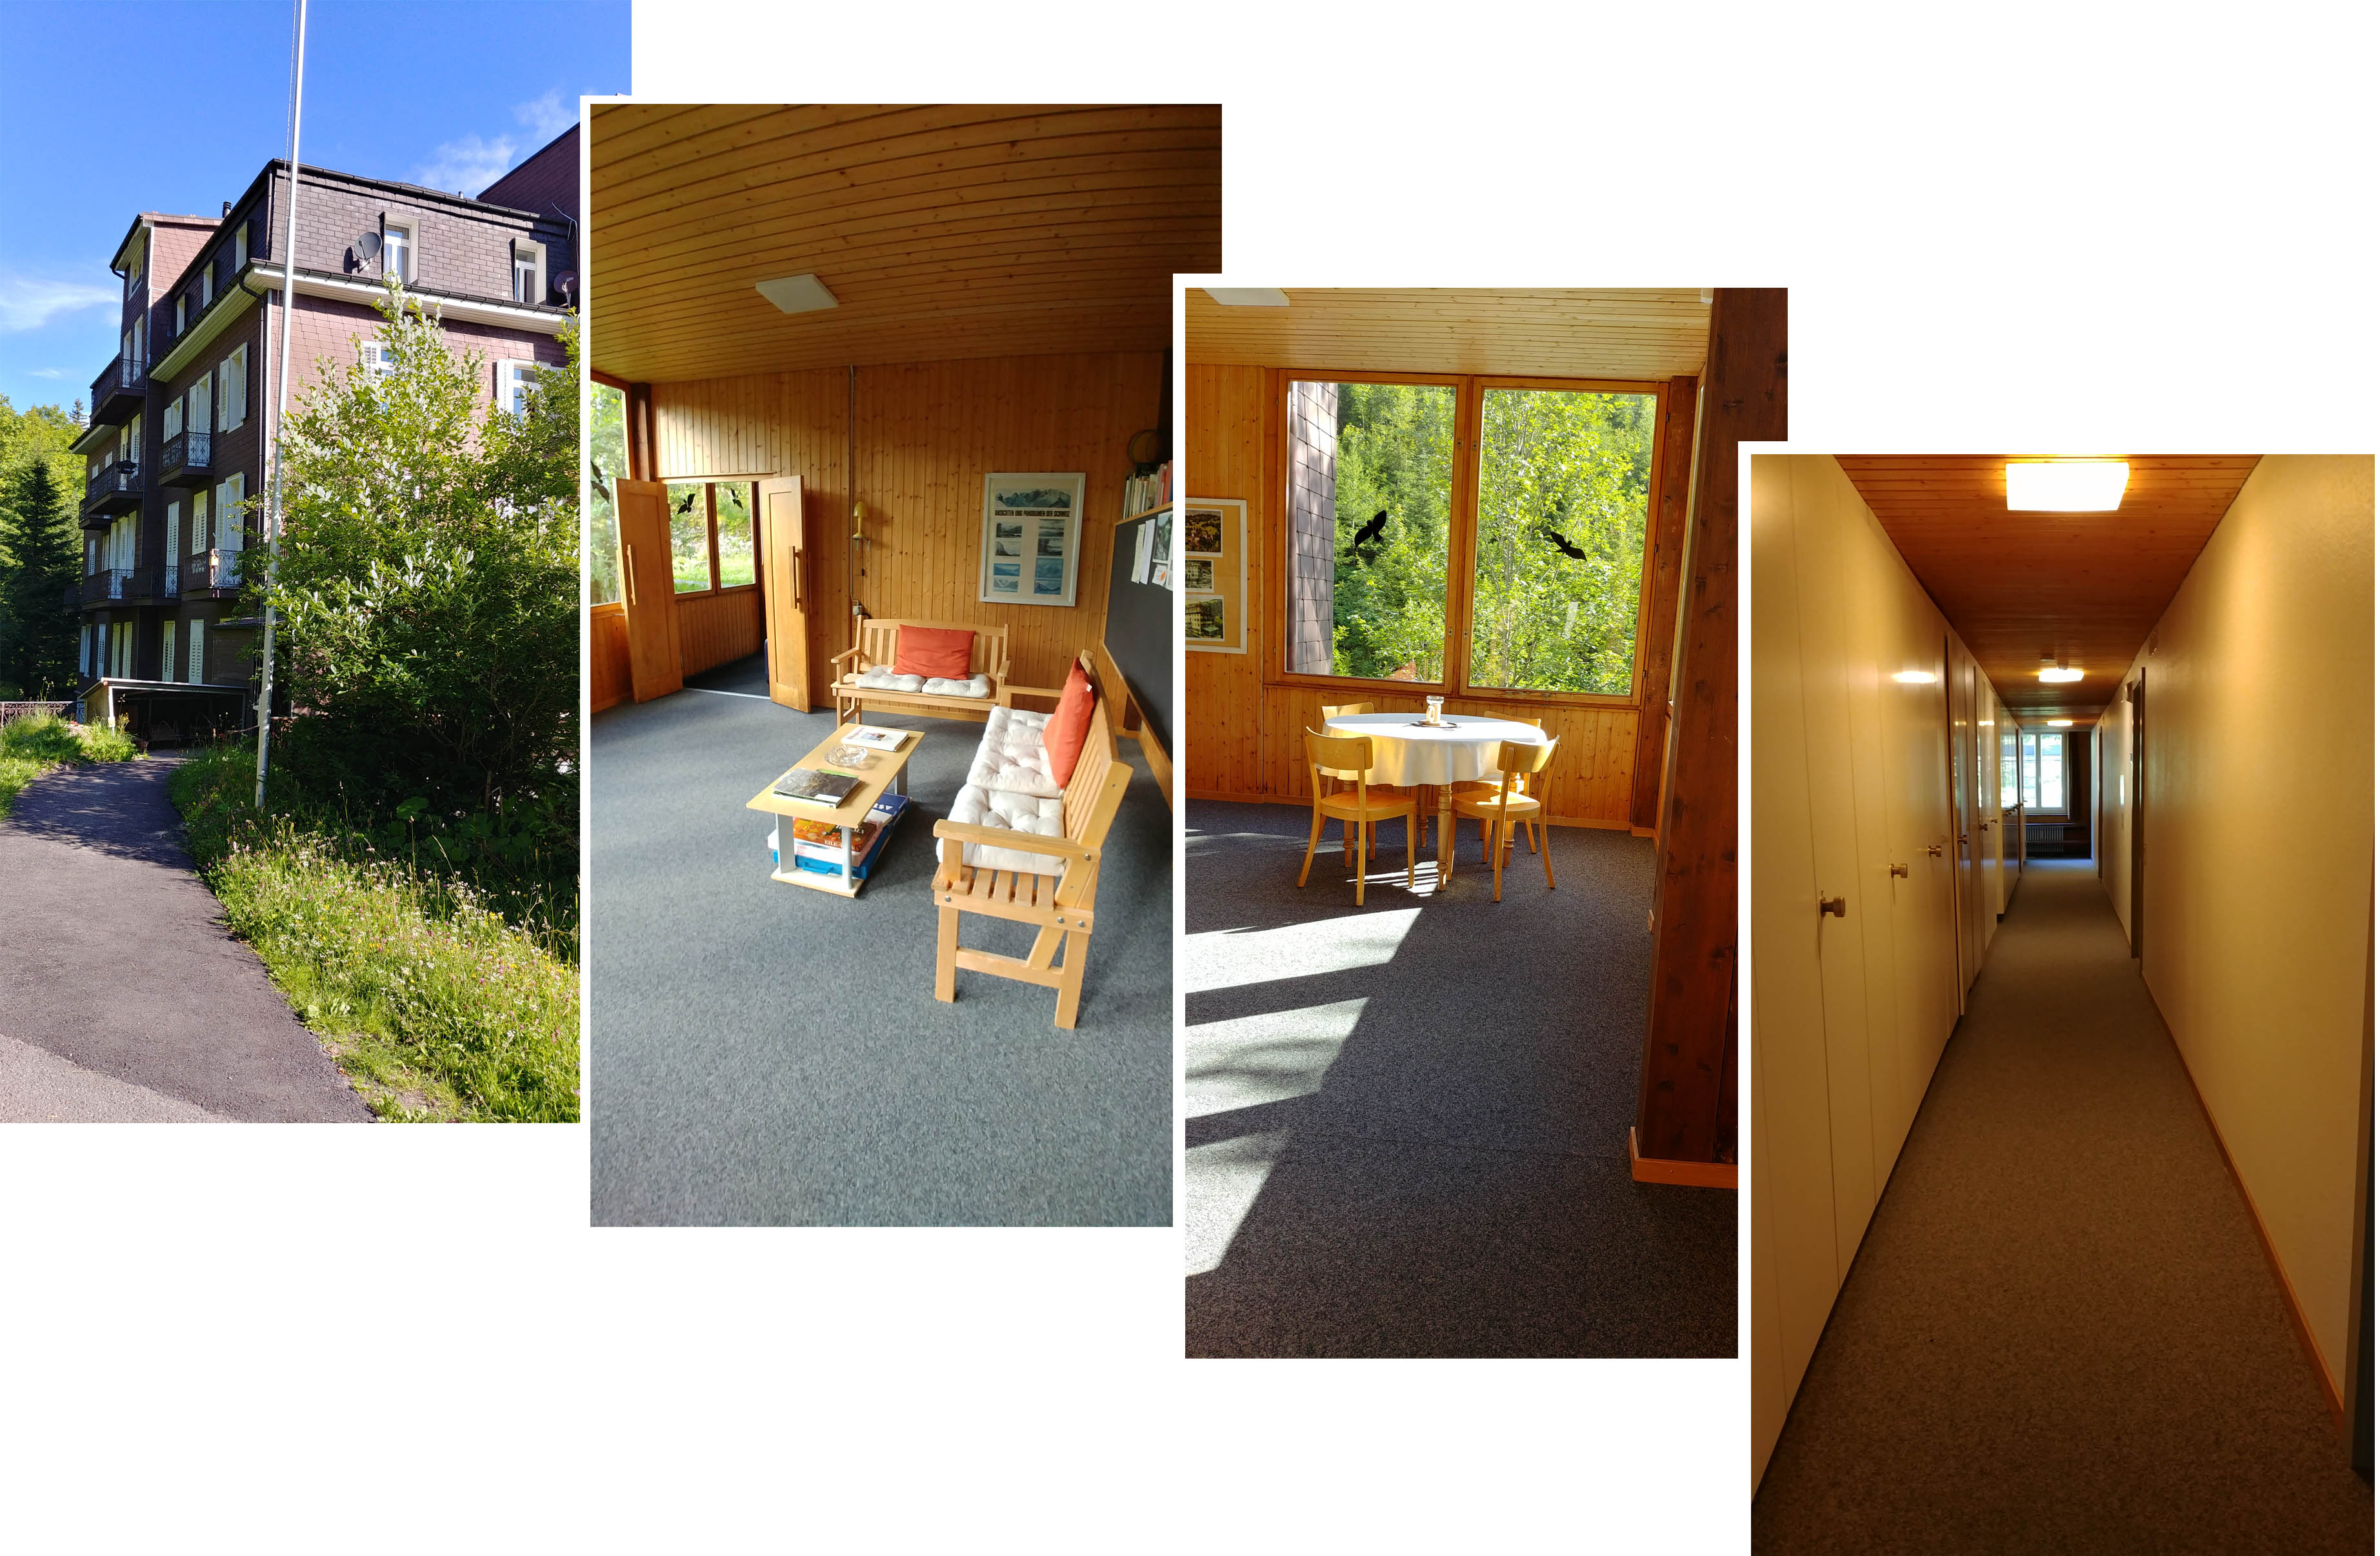 Airbnb apartment, corridor and common areas